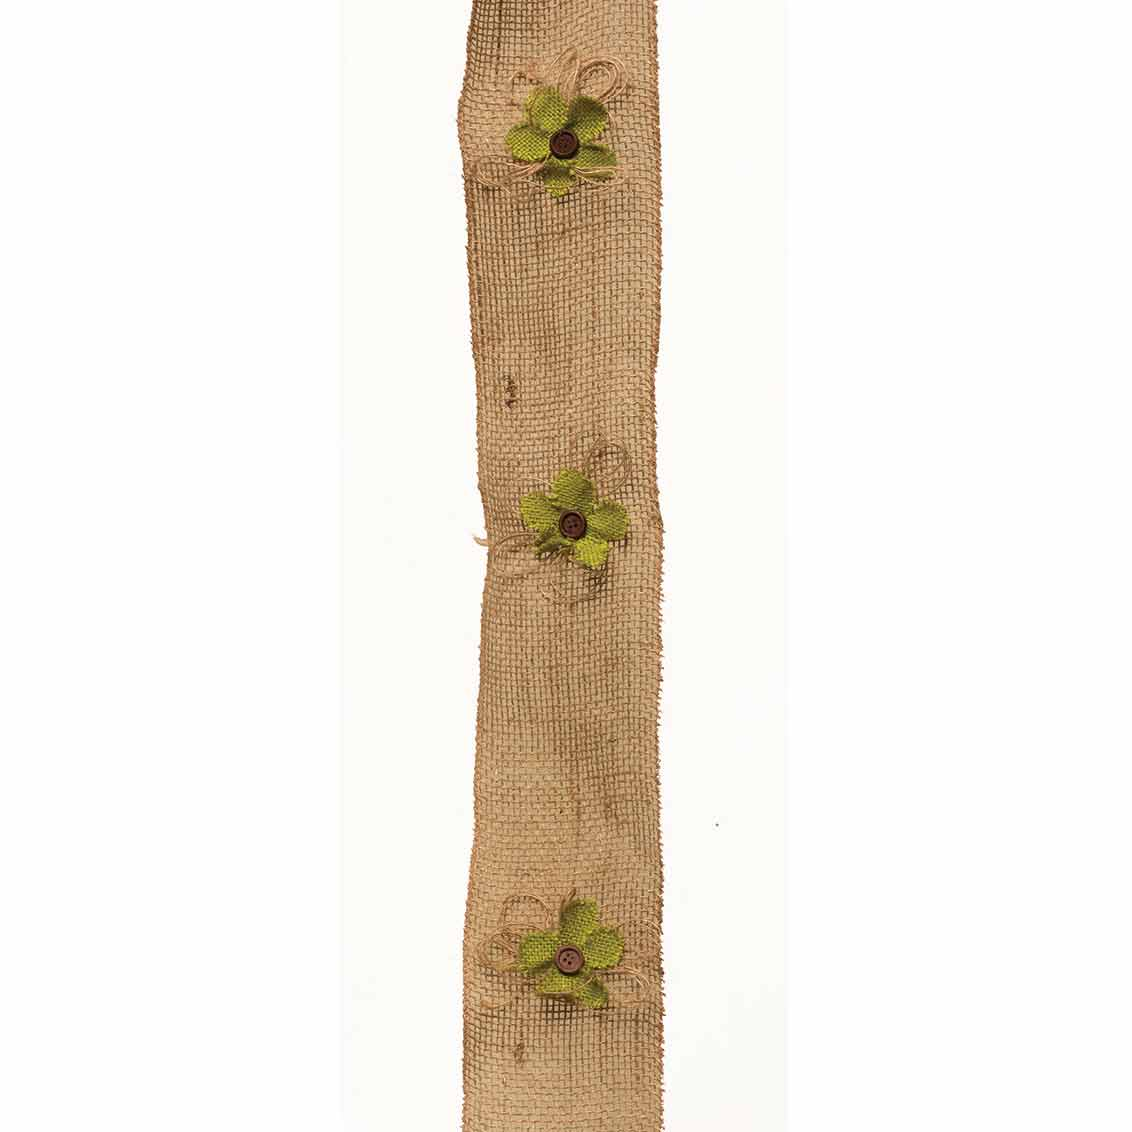 "M8614 BURLAP FLORAL GARLAND WITH BUTTONS 6' X 4"" 50b"